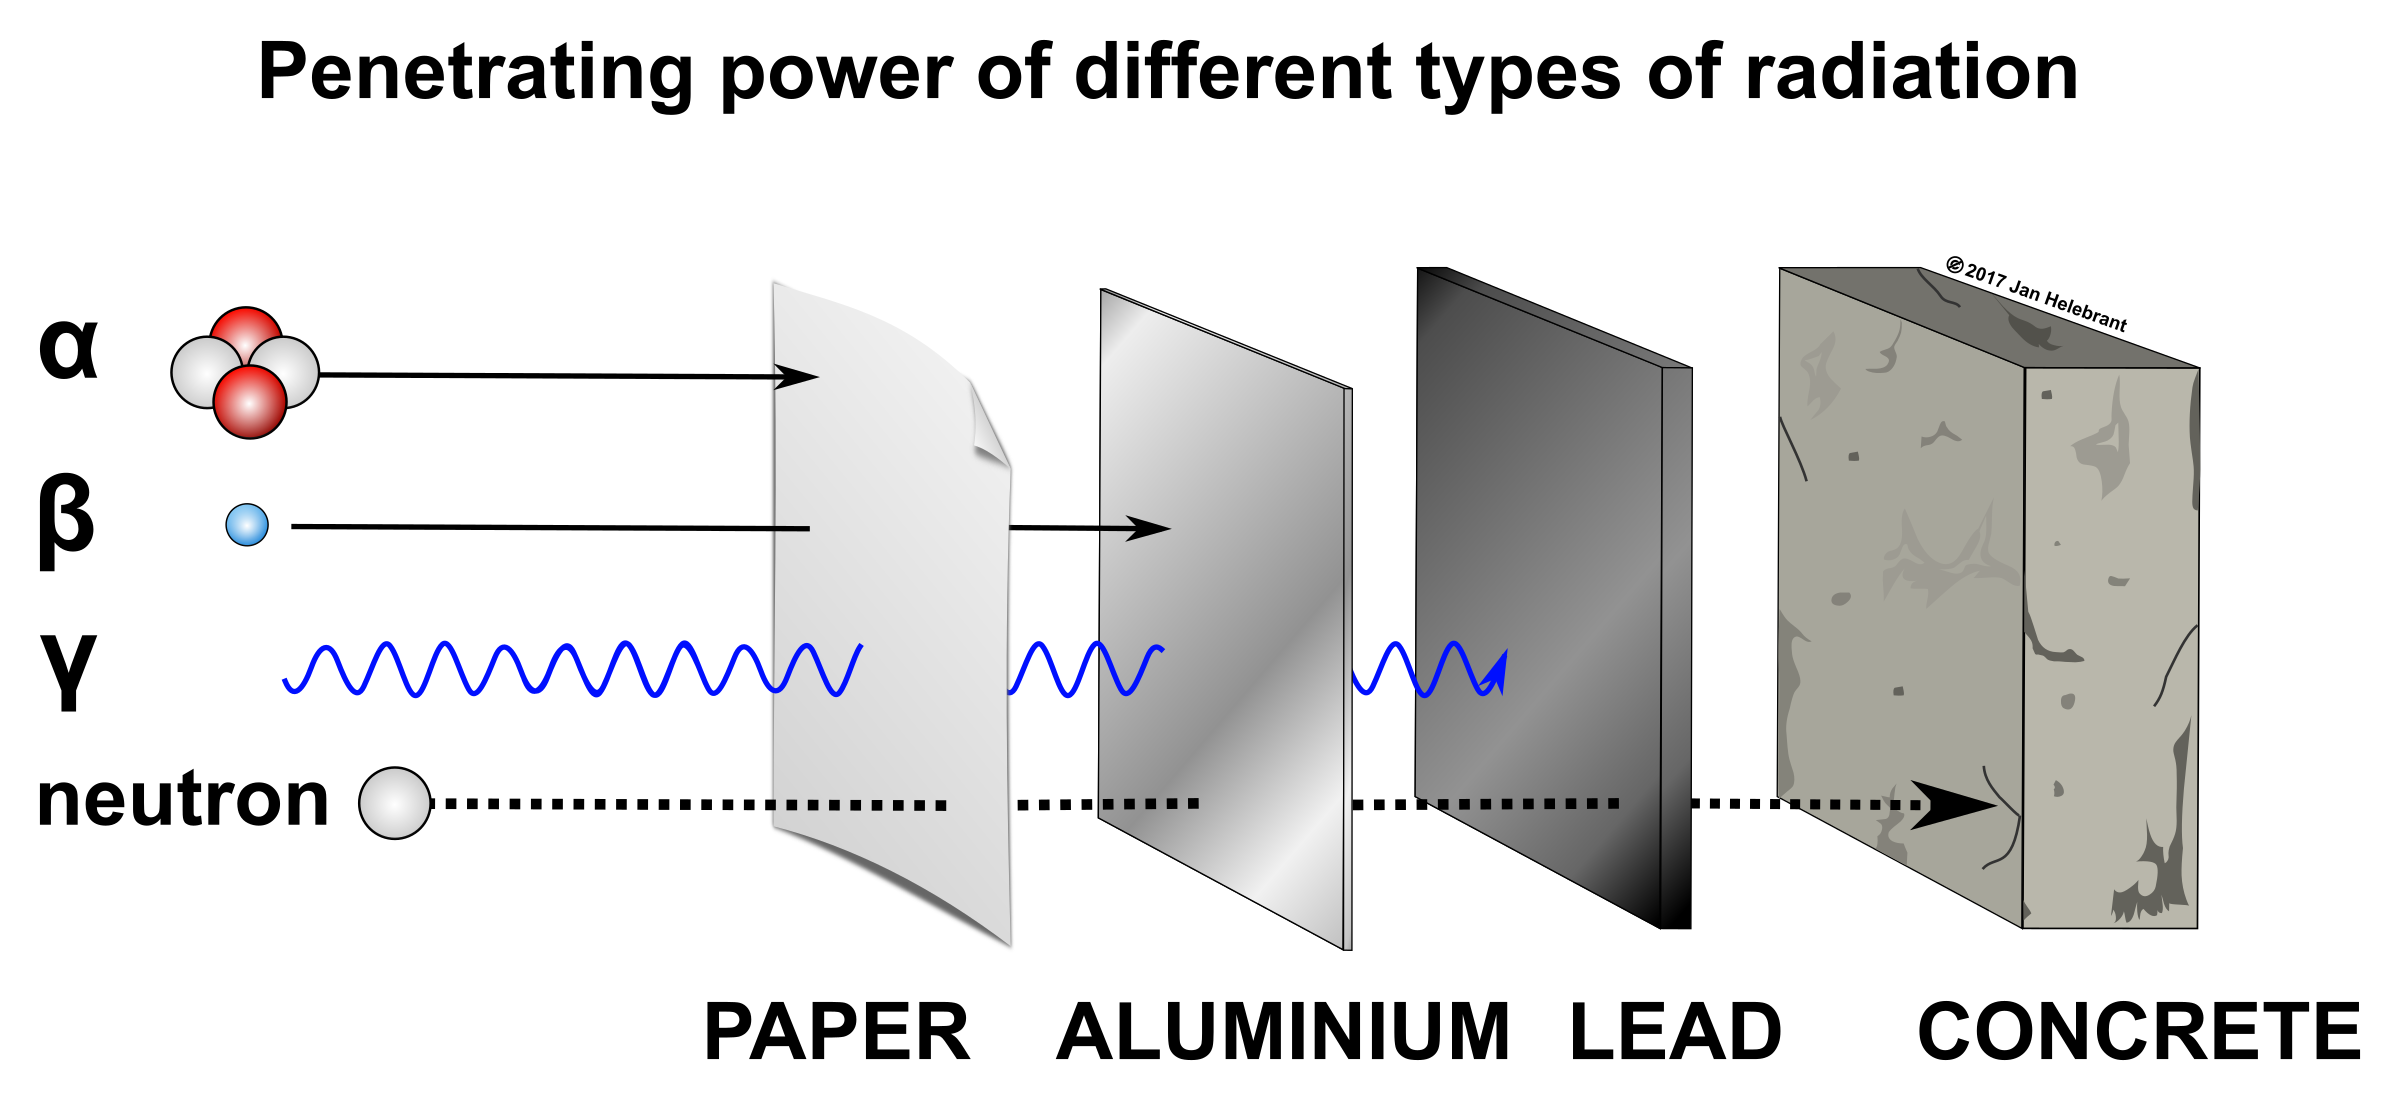 Penetrating power of different types of radiation - alpha, beta, gamma and neutrons by Juhele